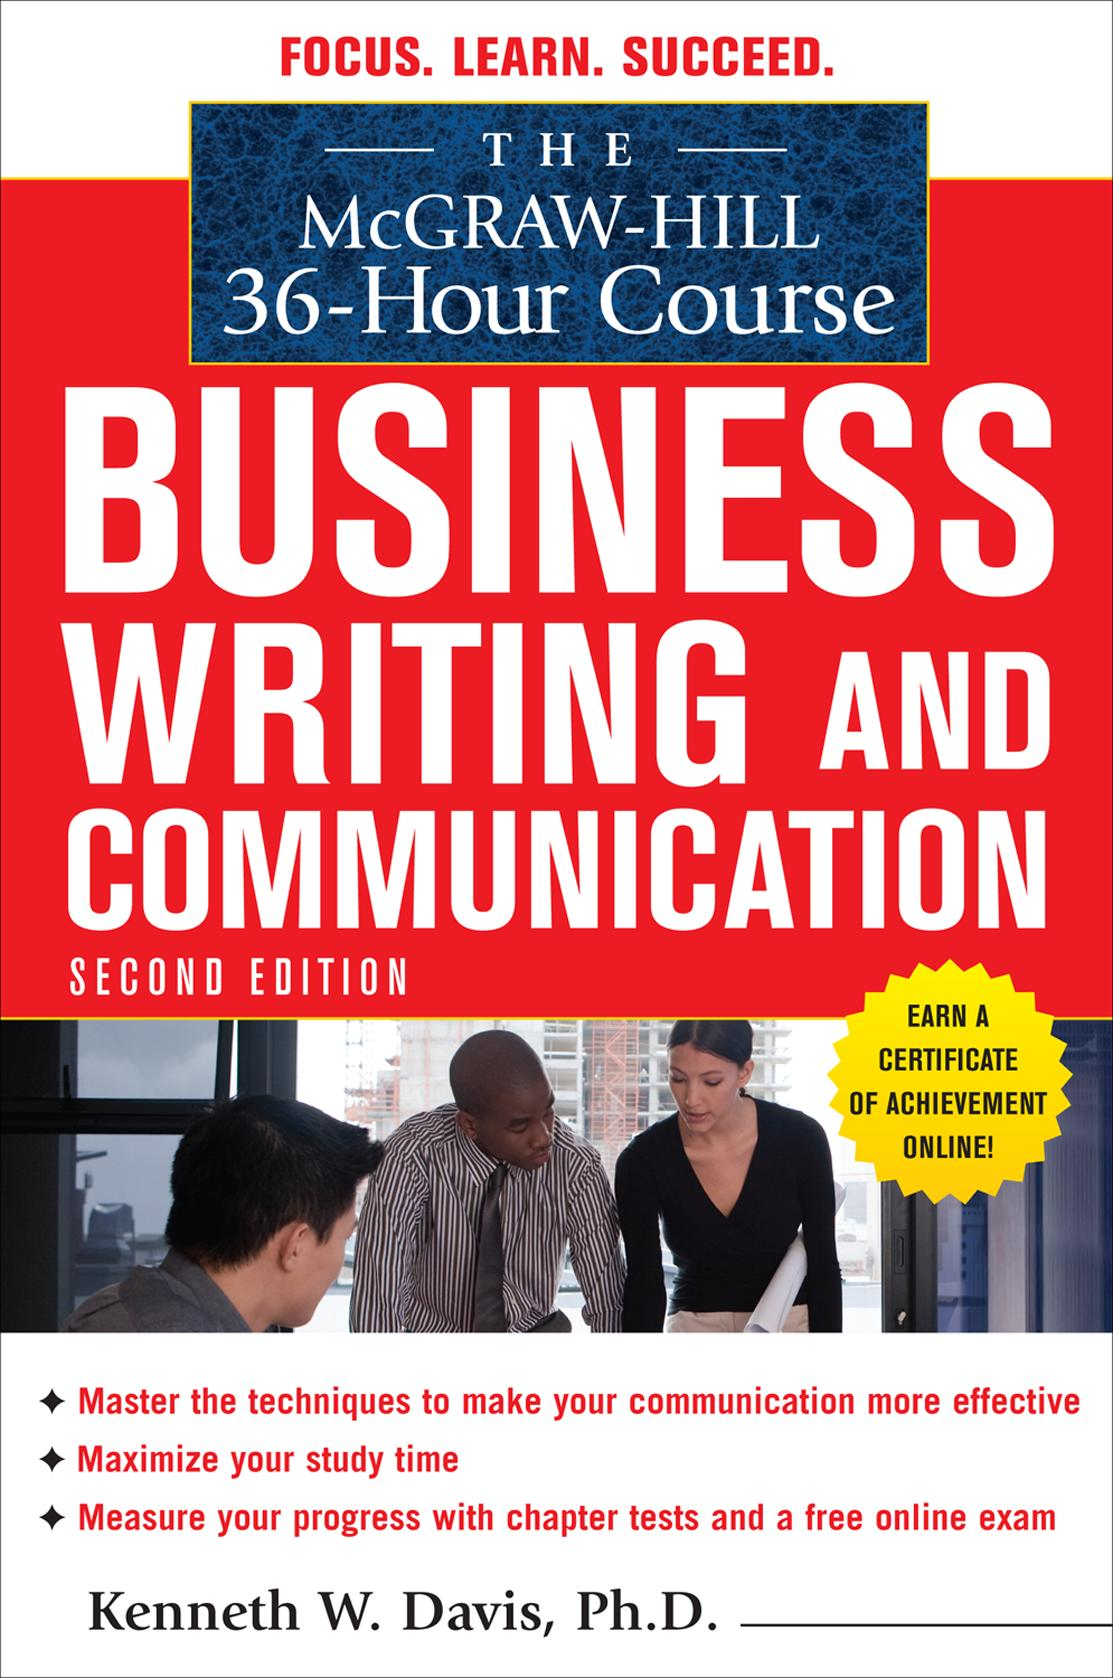 Mcgraw Hill 36 Hour Courses The Mcgraw Hill 36 Hour